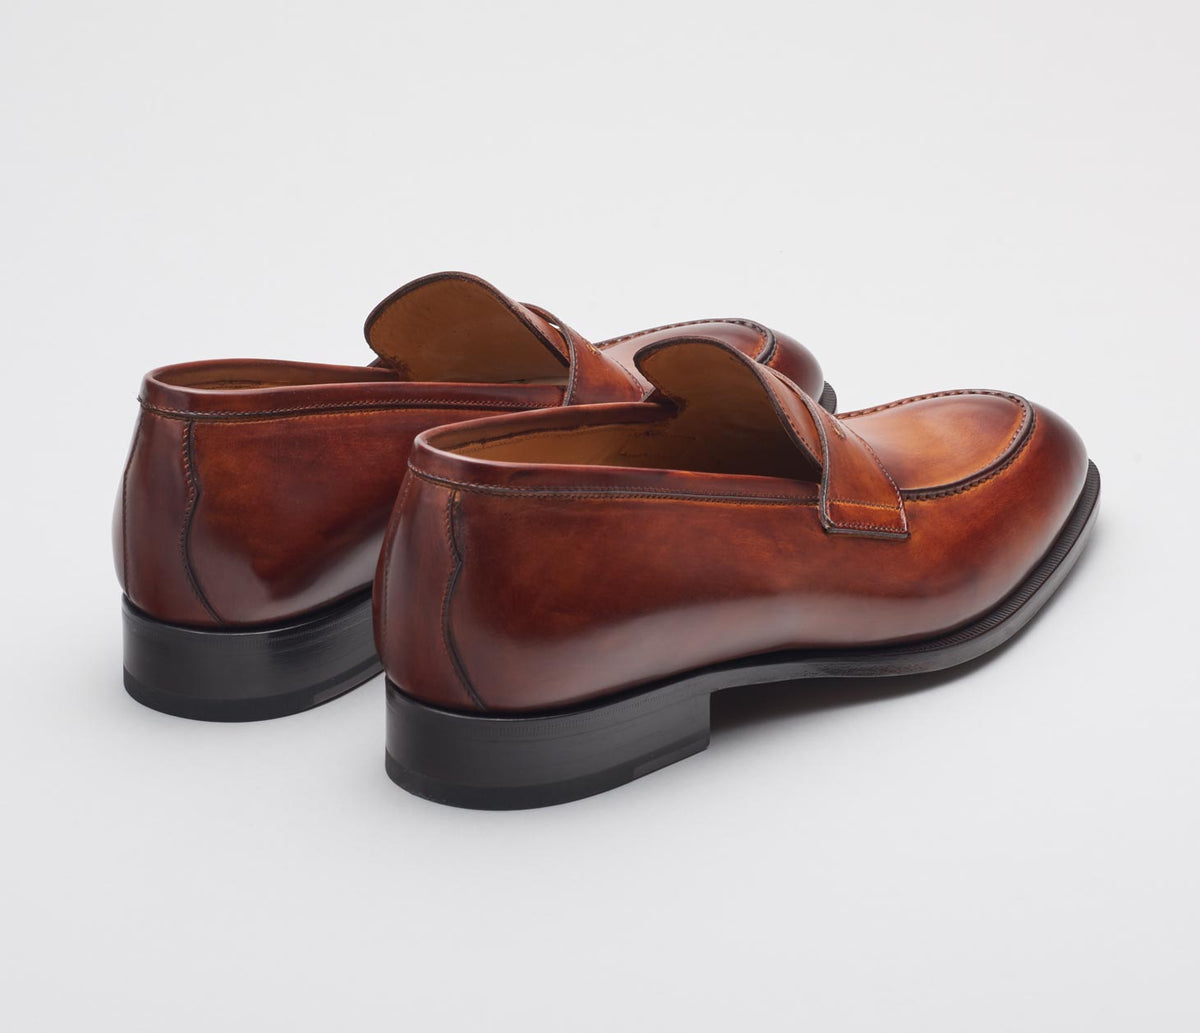 Amato Leather Deco Loafer in Marmo